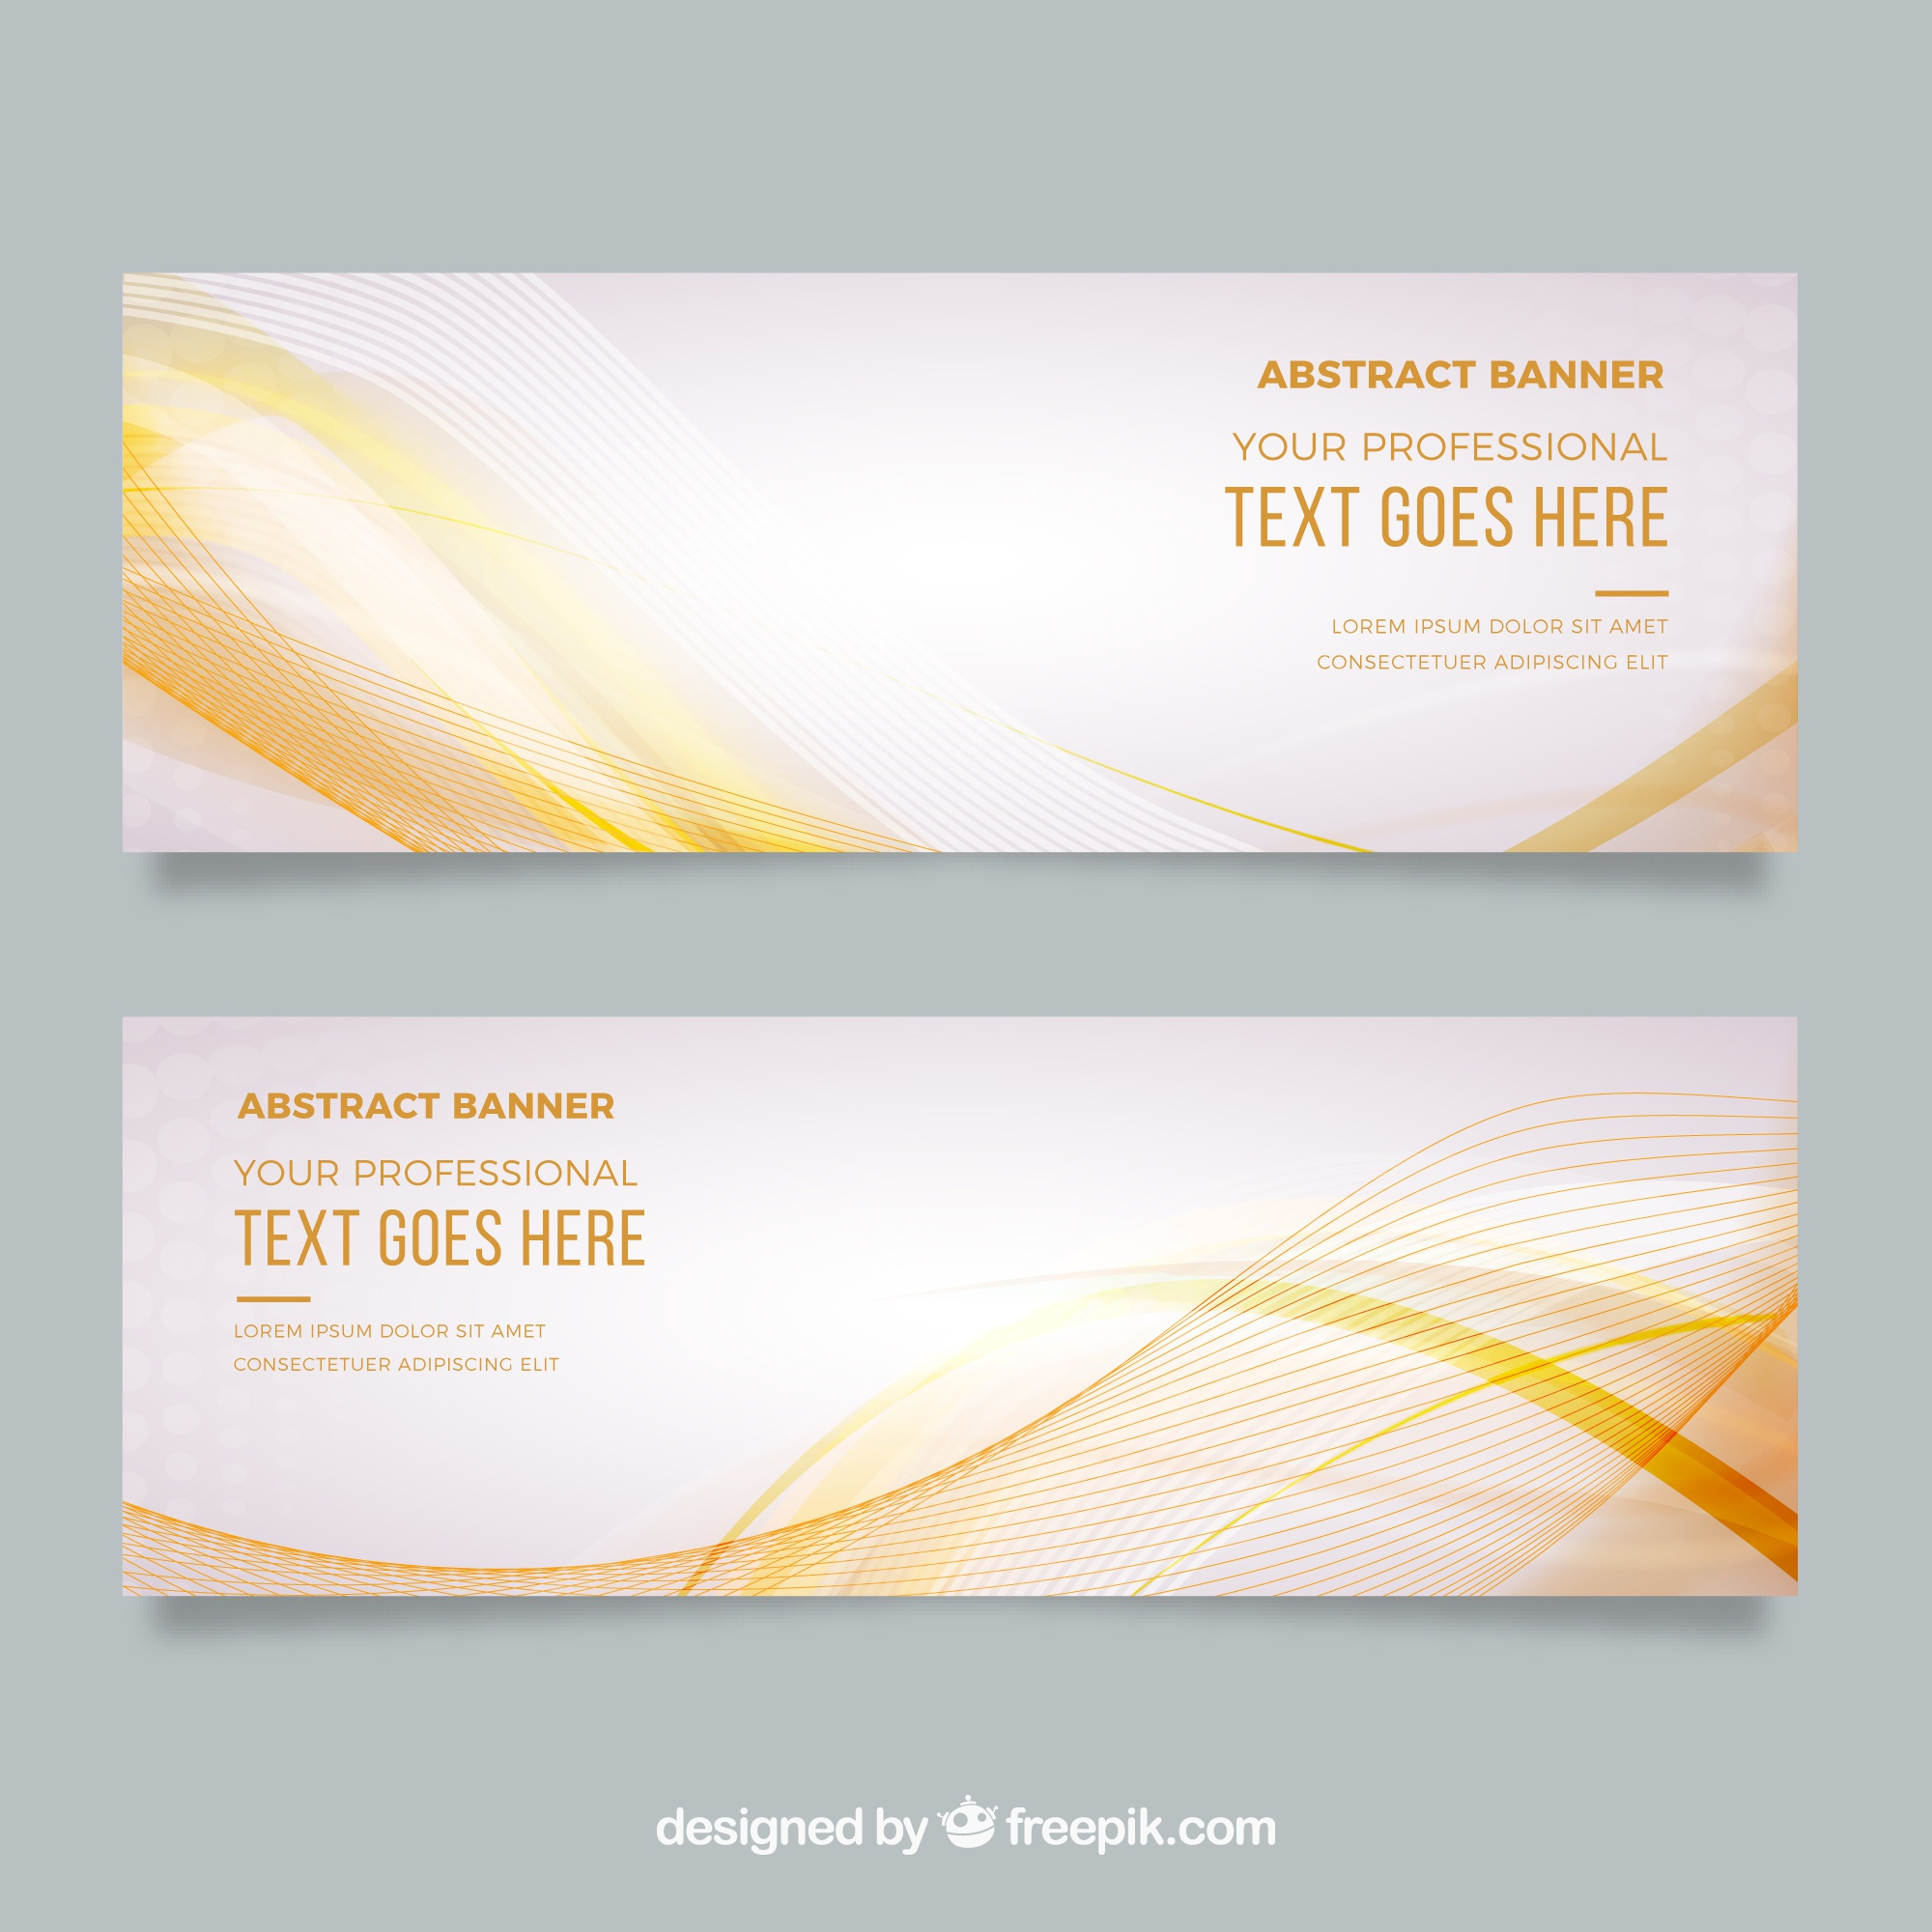 Abstract banners with waves